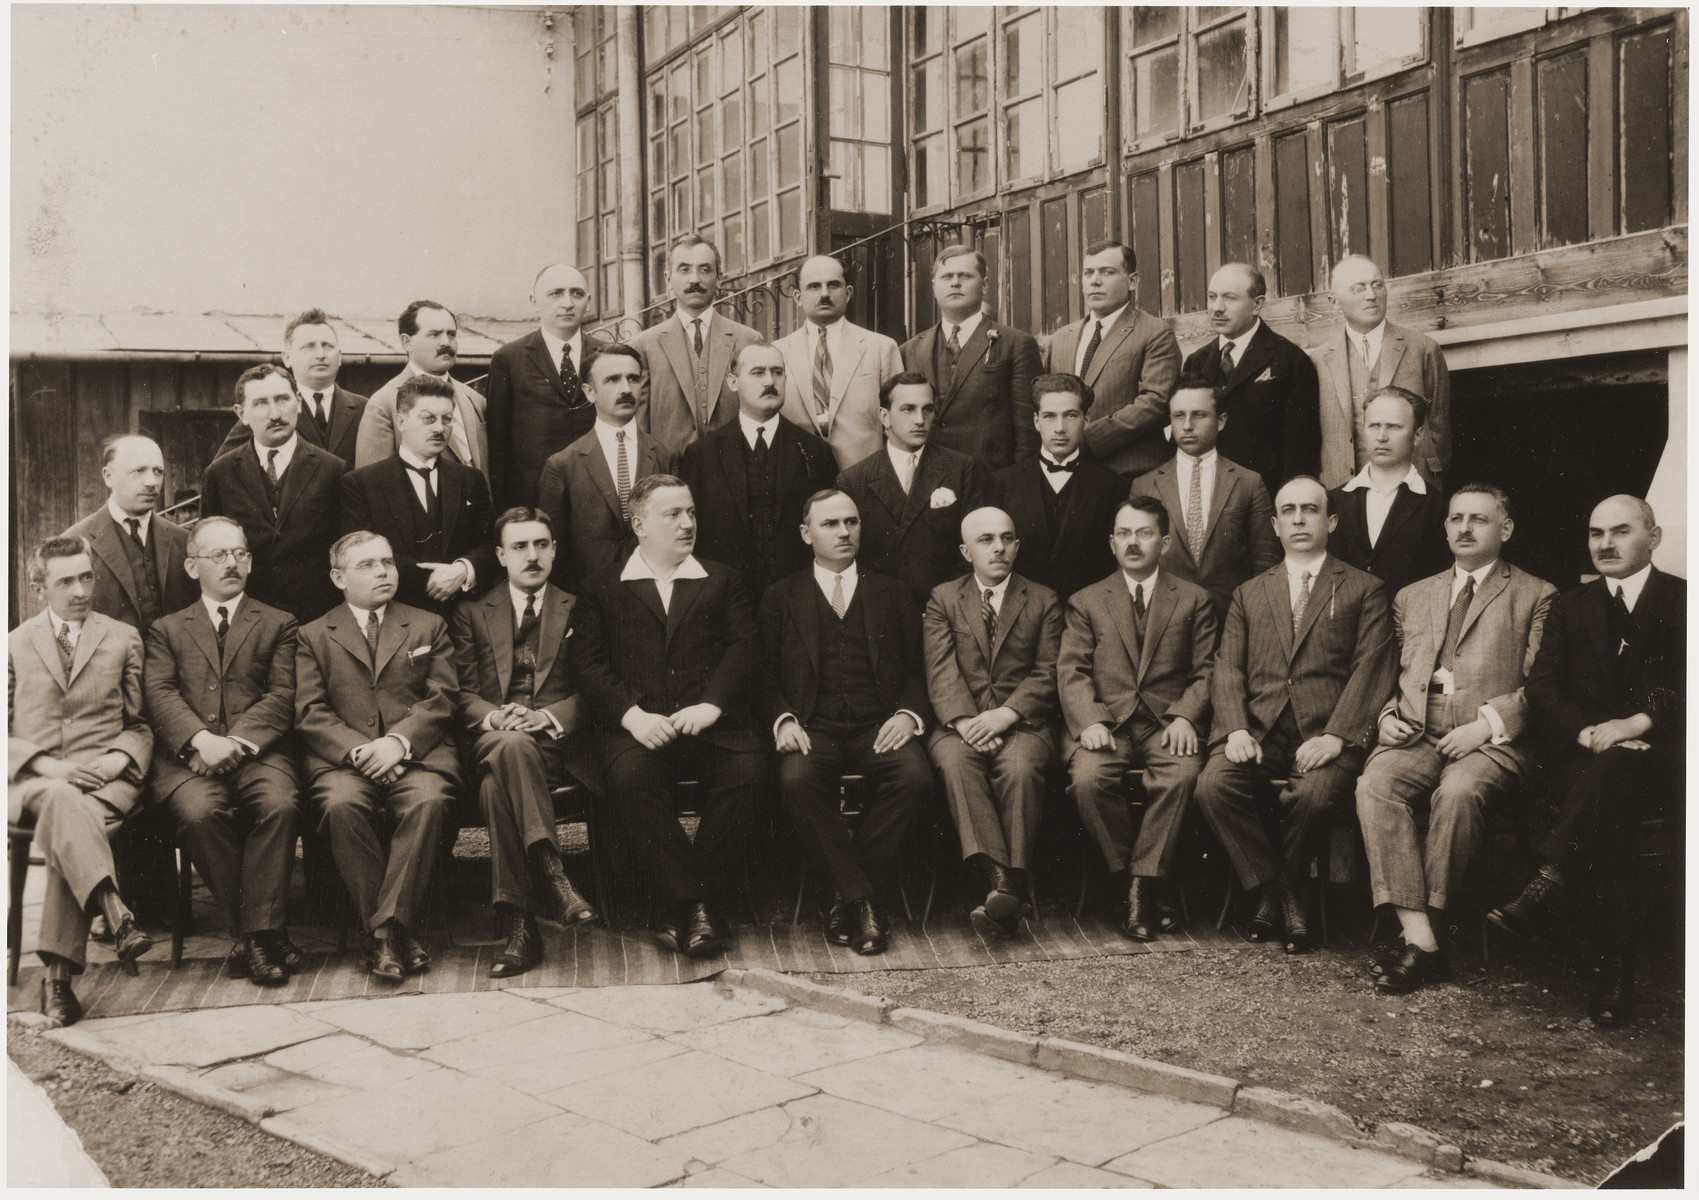 Group portrait of the faculty of the boys' public high school no. 3.  Pictured in the photograph are Professors Feuer, Hundert, Horustein, Barbasch, Pilpel, Siataru, Ignatescu, Mayer, Tyndel, Sternberg, Hoffmann, Barlion, Susuleac, Sherman, Marim, Teaciuc, Rusu, Sabor, Singer, Wachsmann, Manacatide, Schleier, Viteucu, Ordinanz, Kohan, Brenner, Last, and Wurzer.